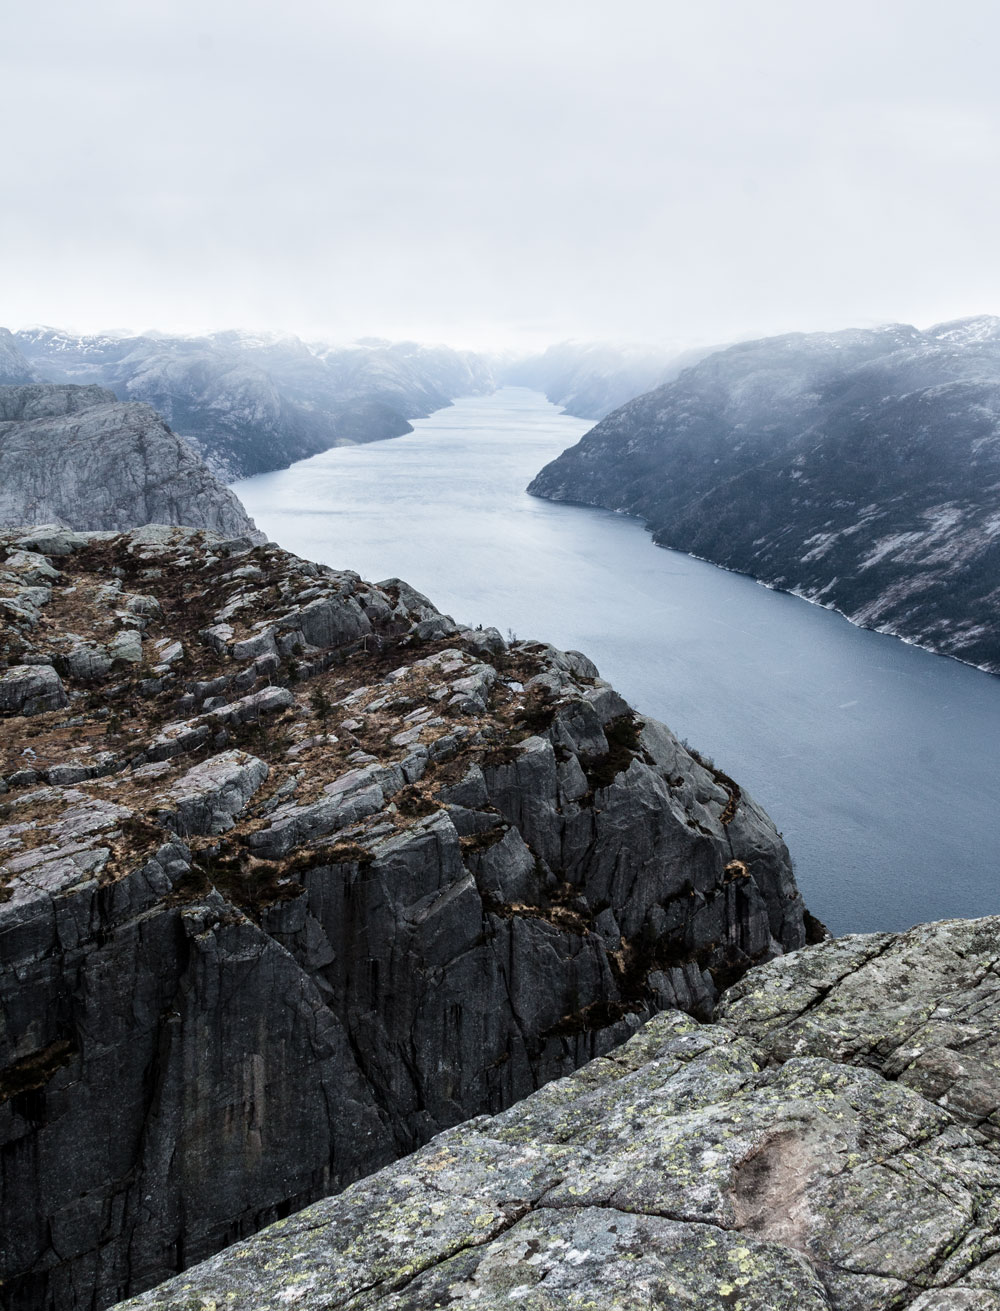 Hiking to Preikestolen in Norway - a travel guide